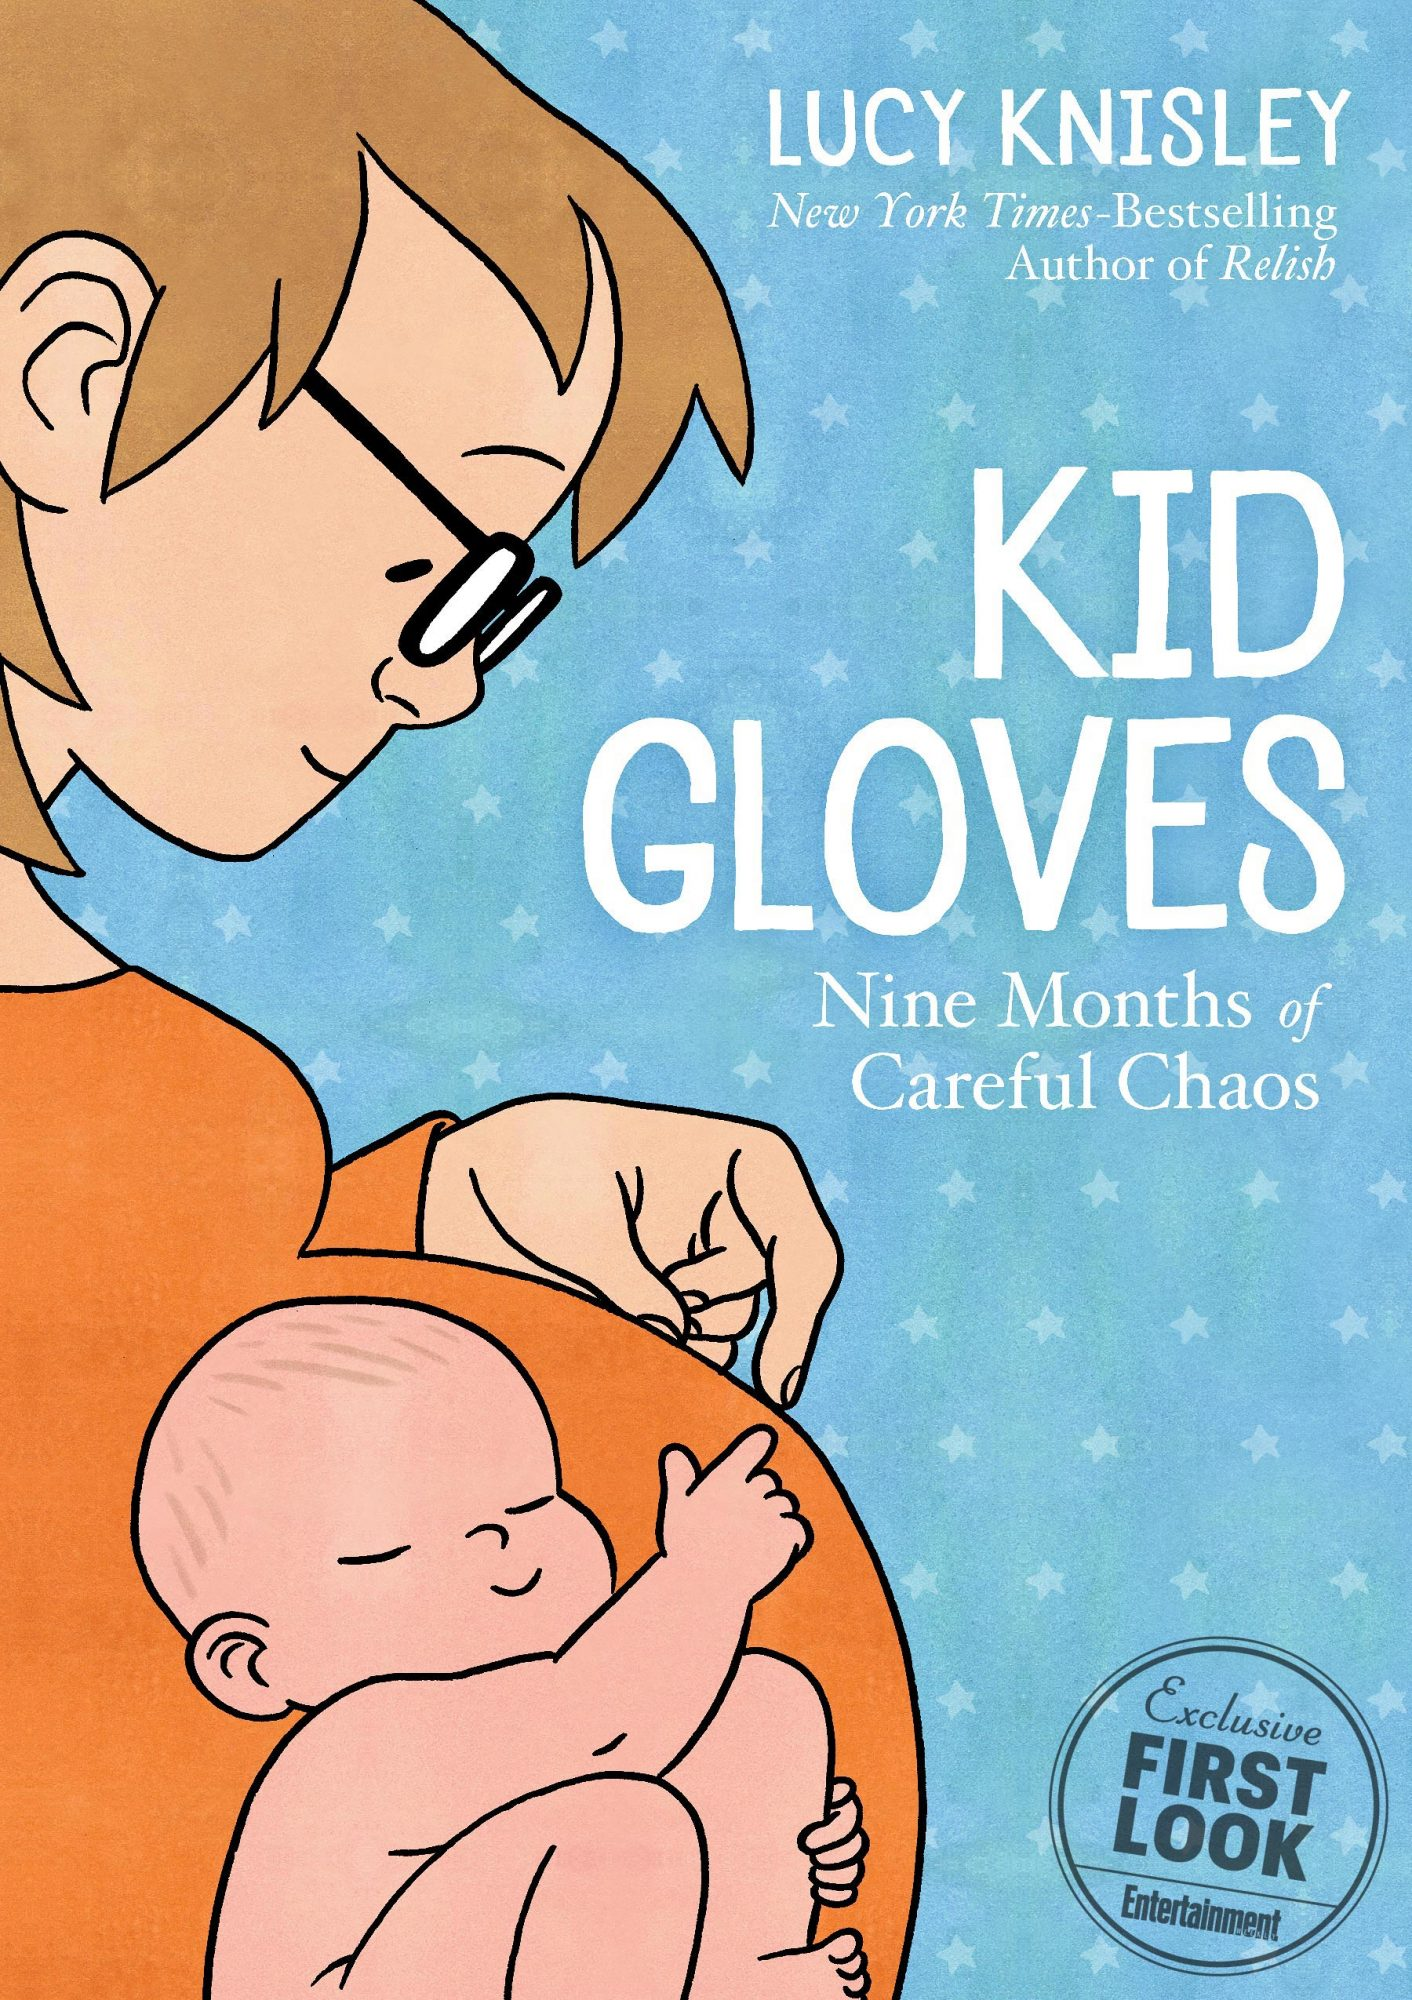 Kid Gloves by Lucy Knisley (Feb. 26)